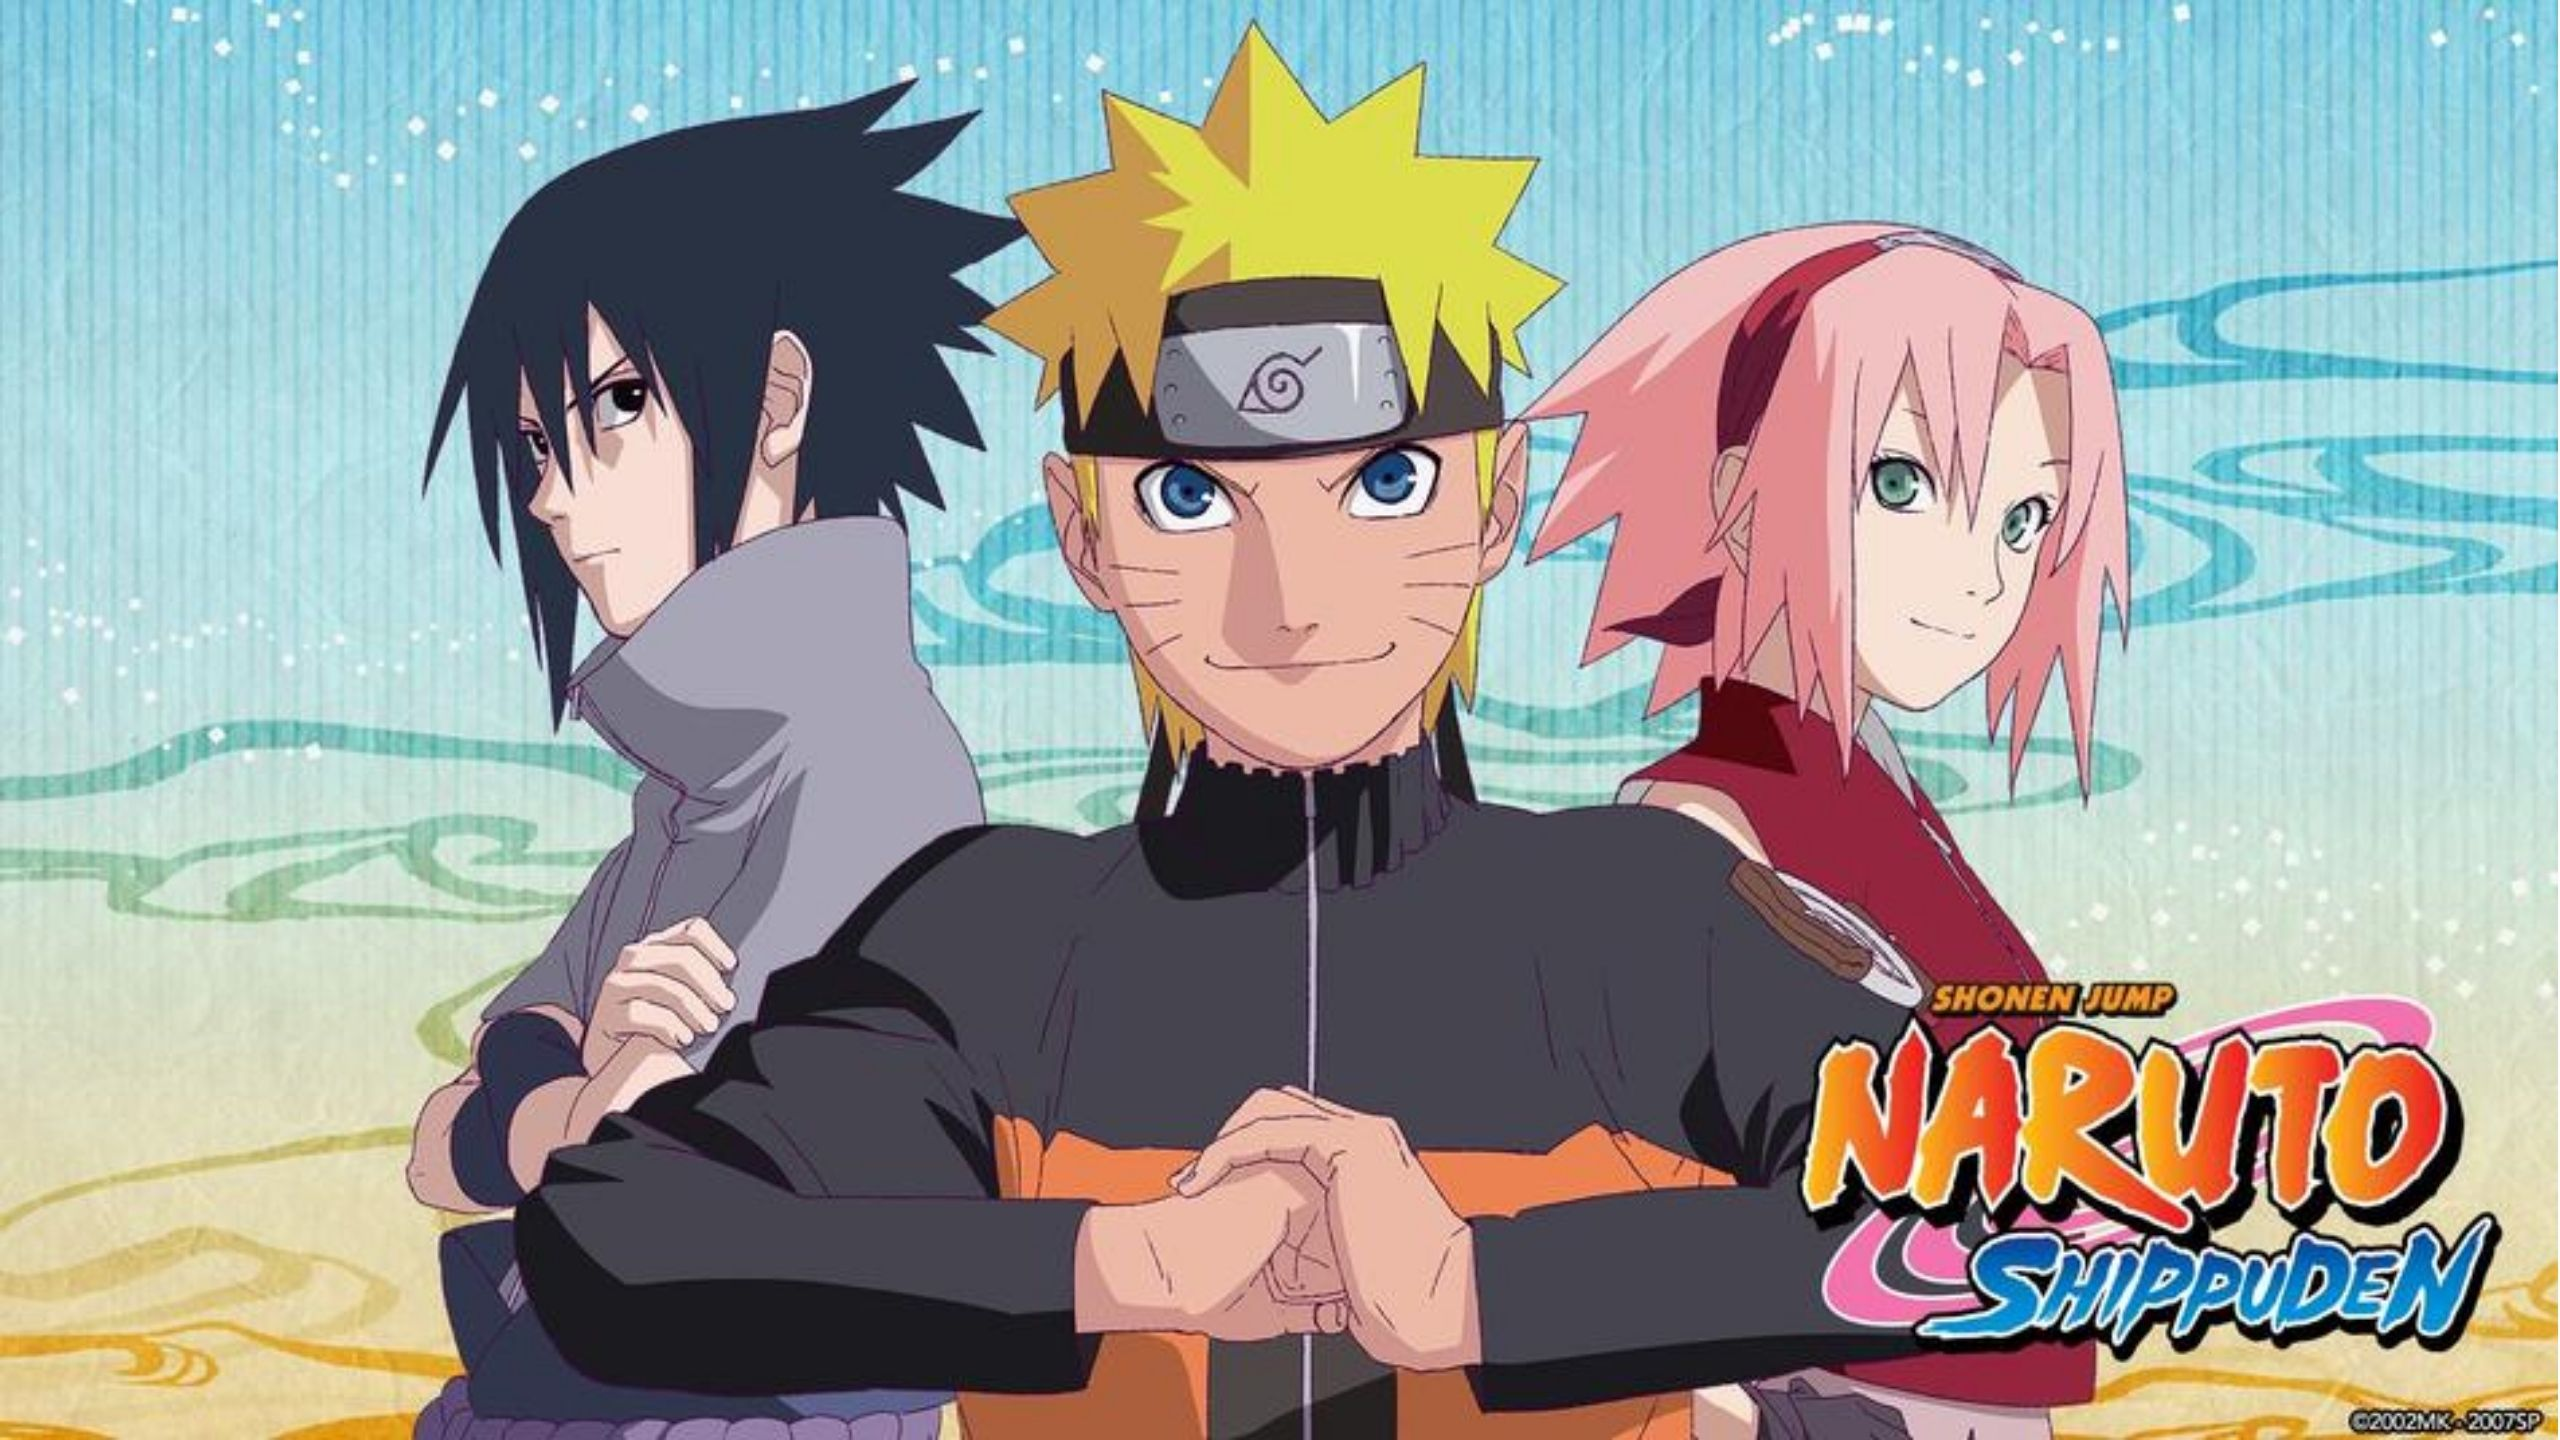 How to Watch Naruto Shippuden Without Fillers